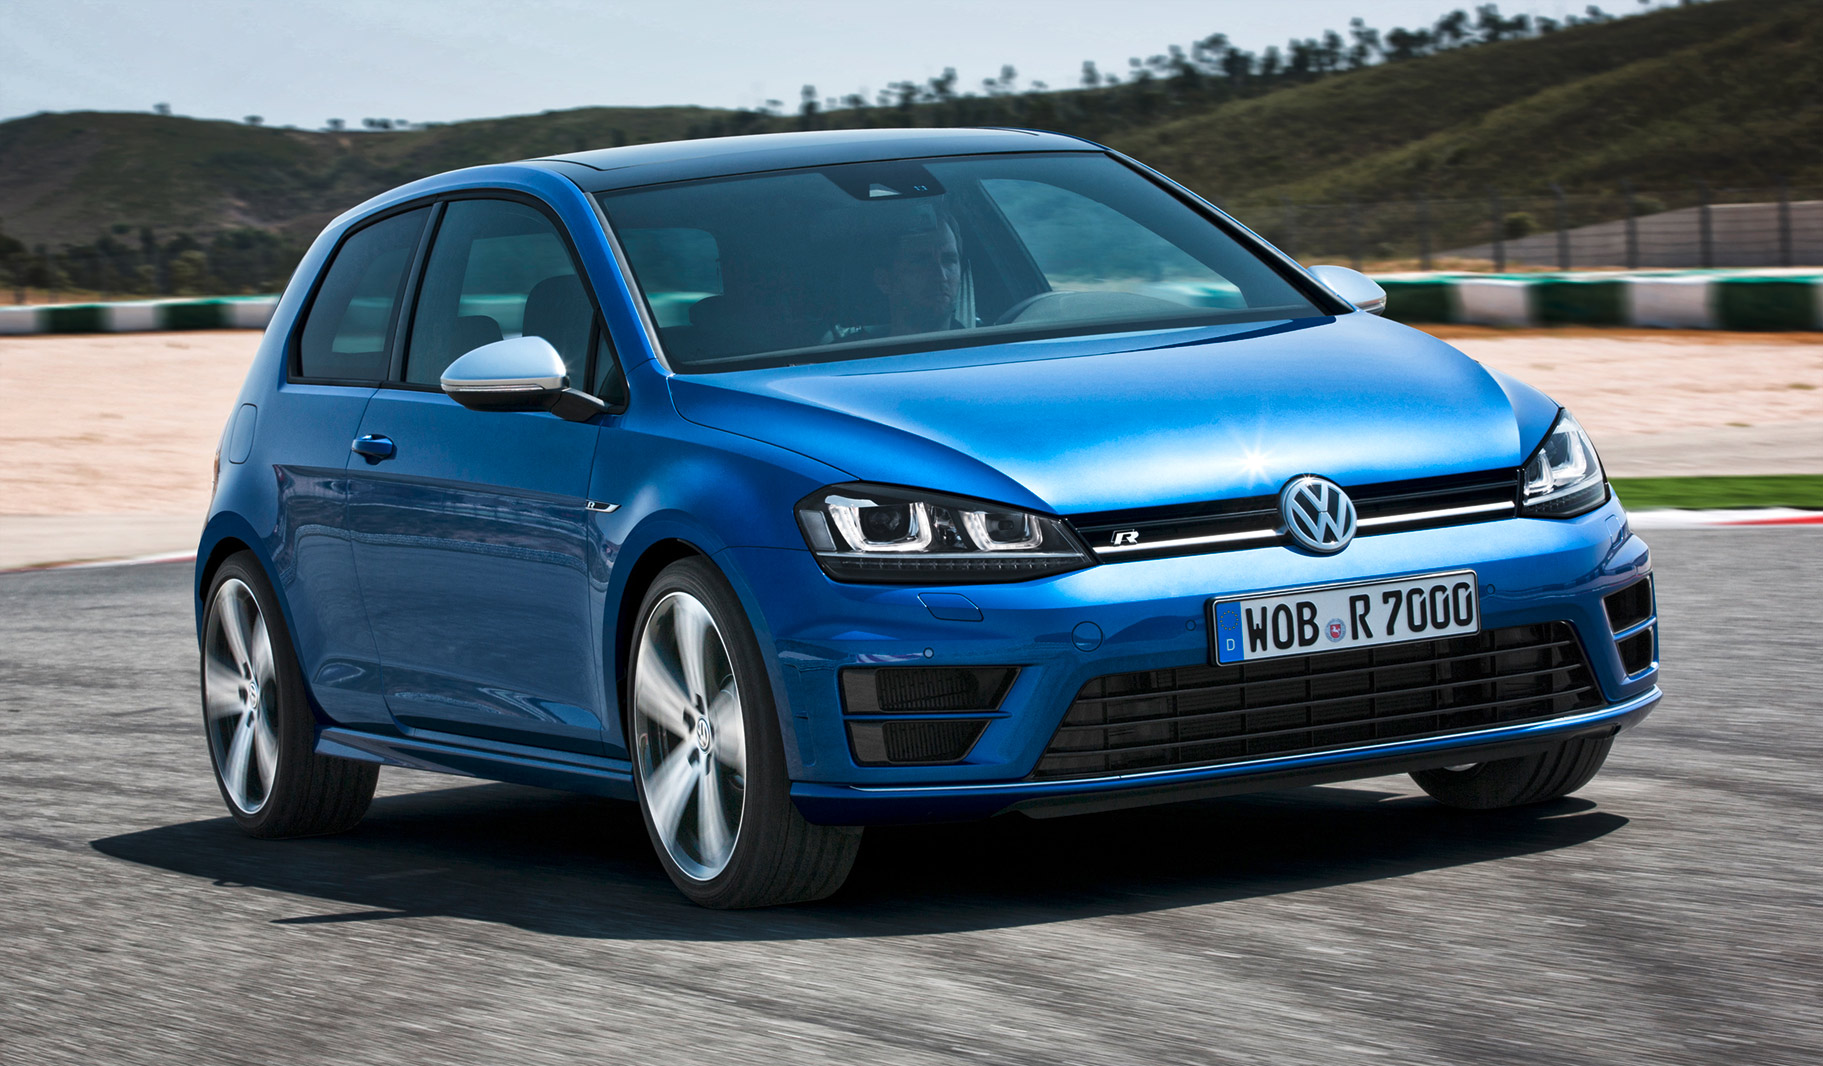 volkswagen-golf-7-r-first-drive-vwvortex-012